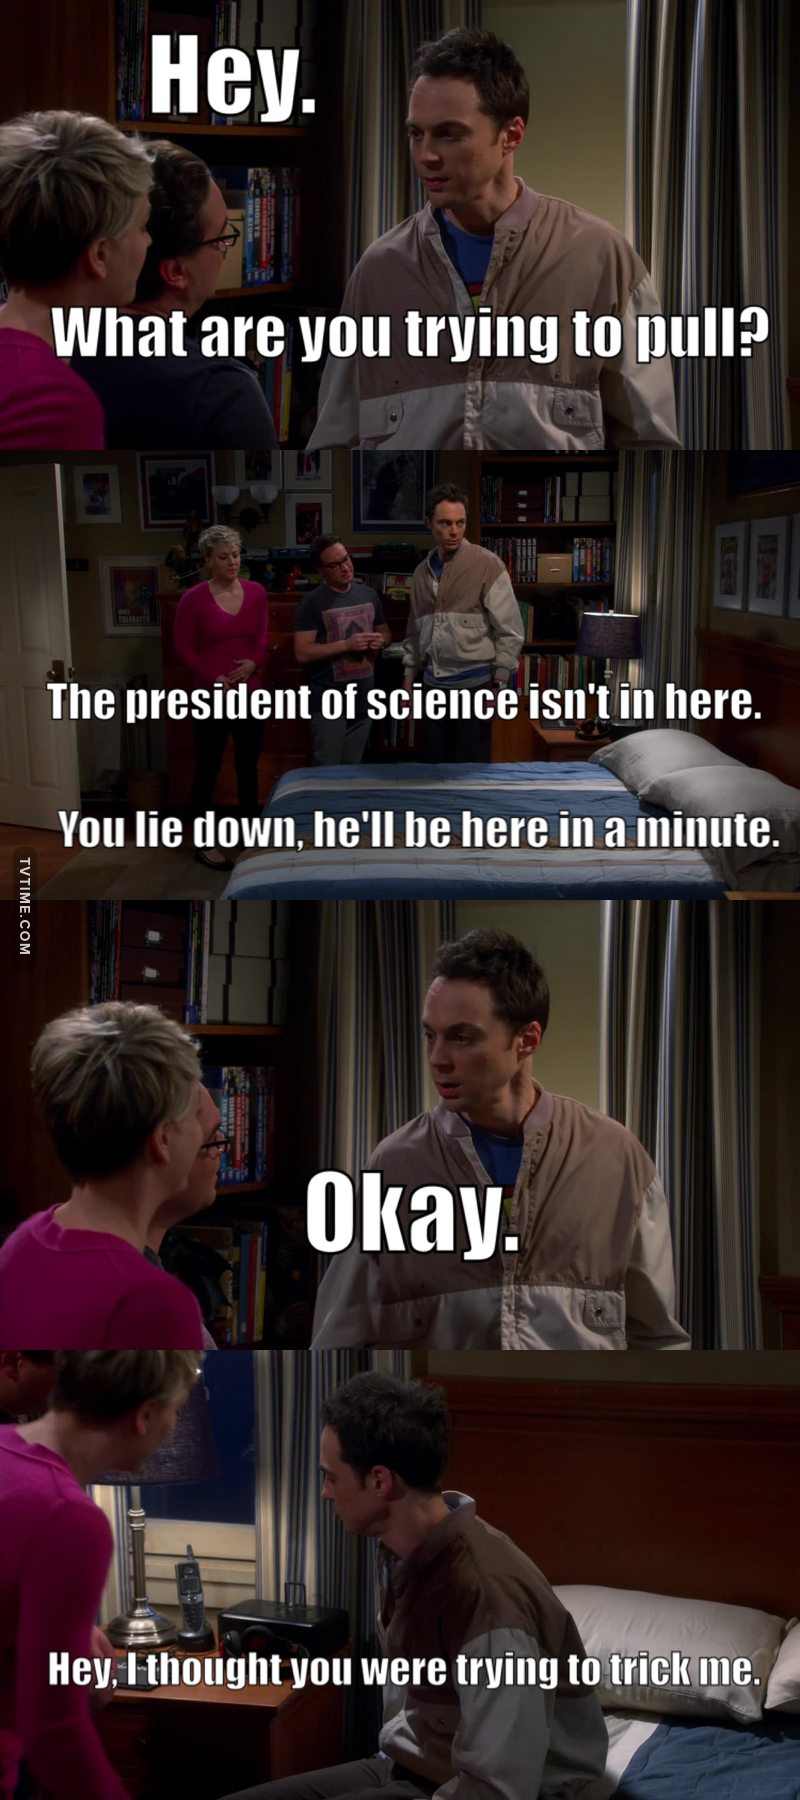 Poor sleepy Sheldon! President of Science 😂😂